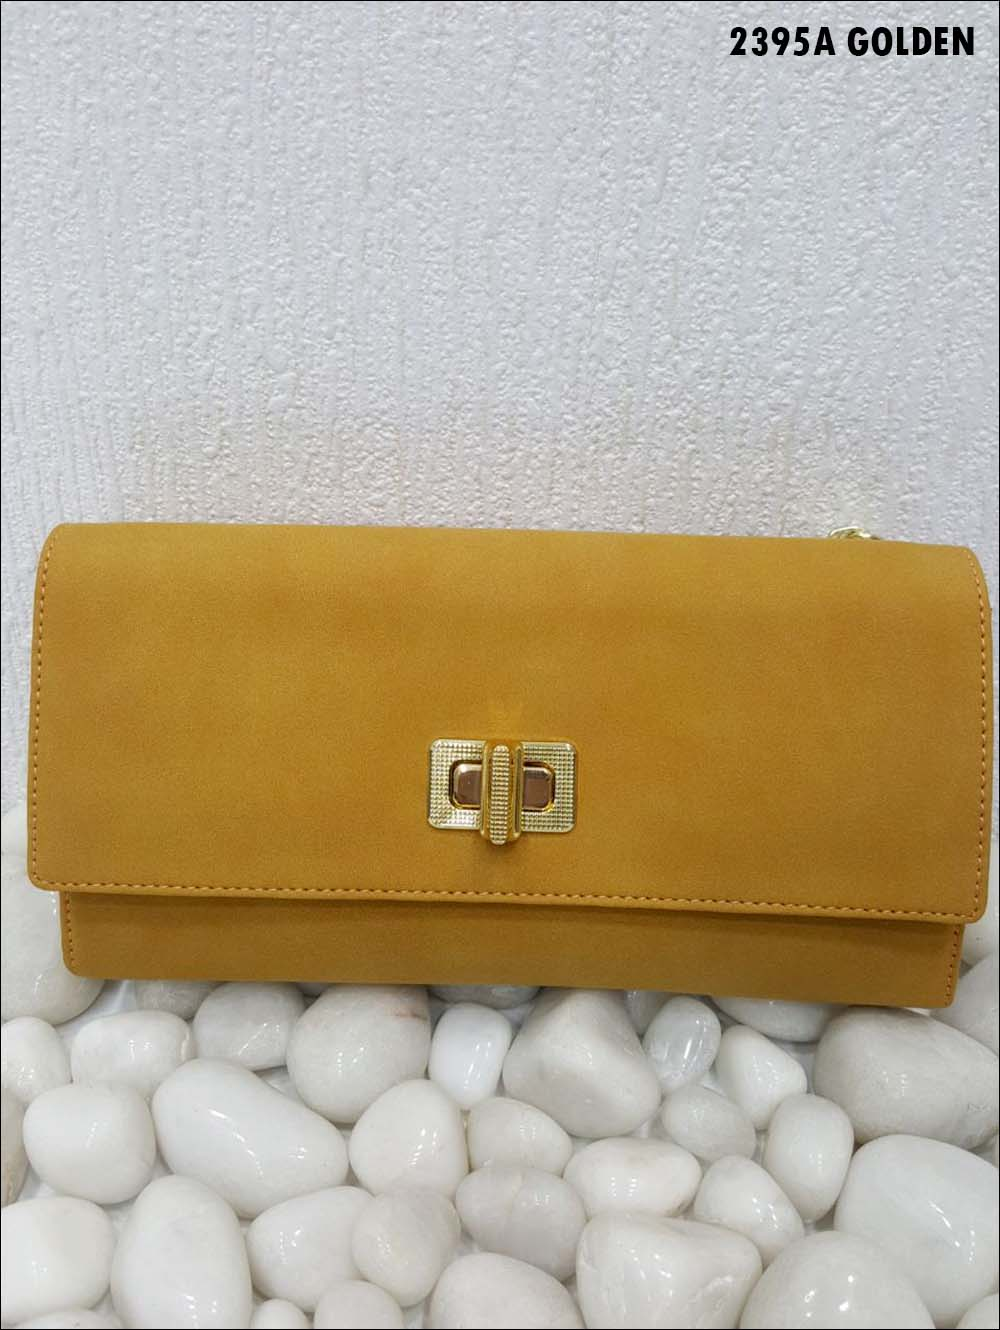 Golden Stylish Women Clutch